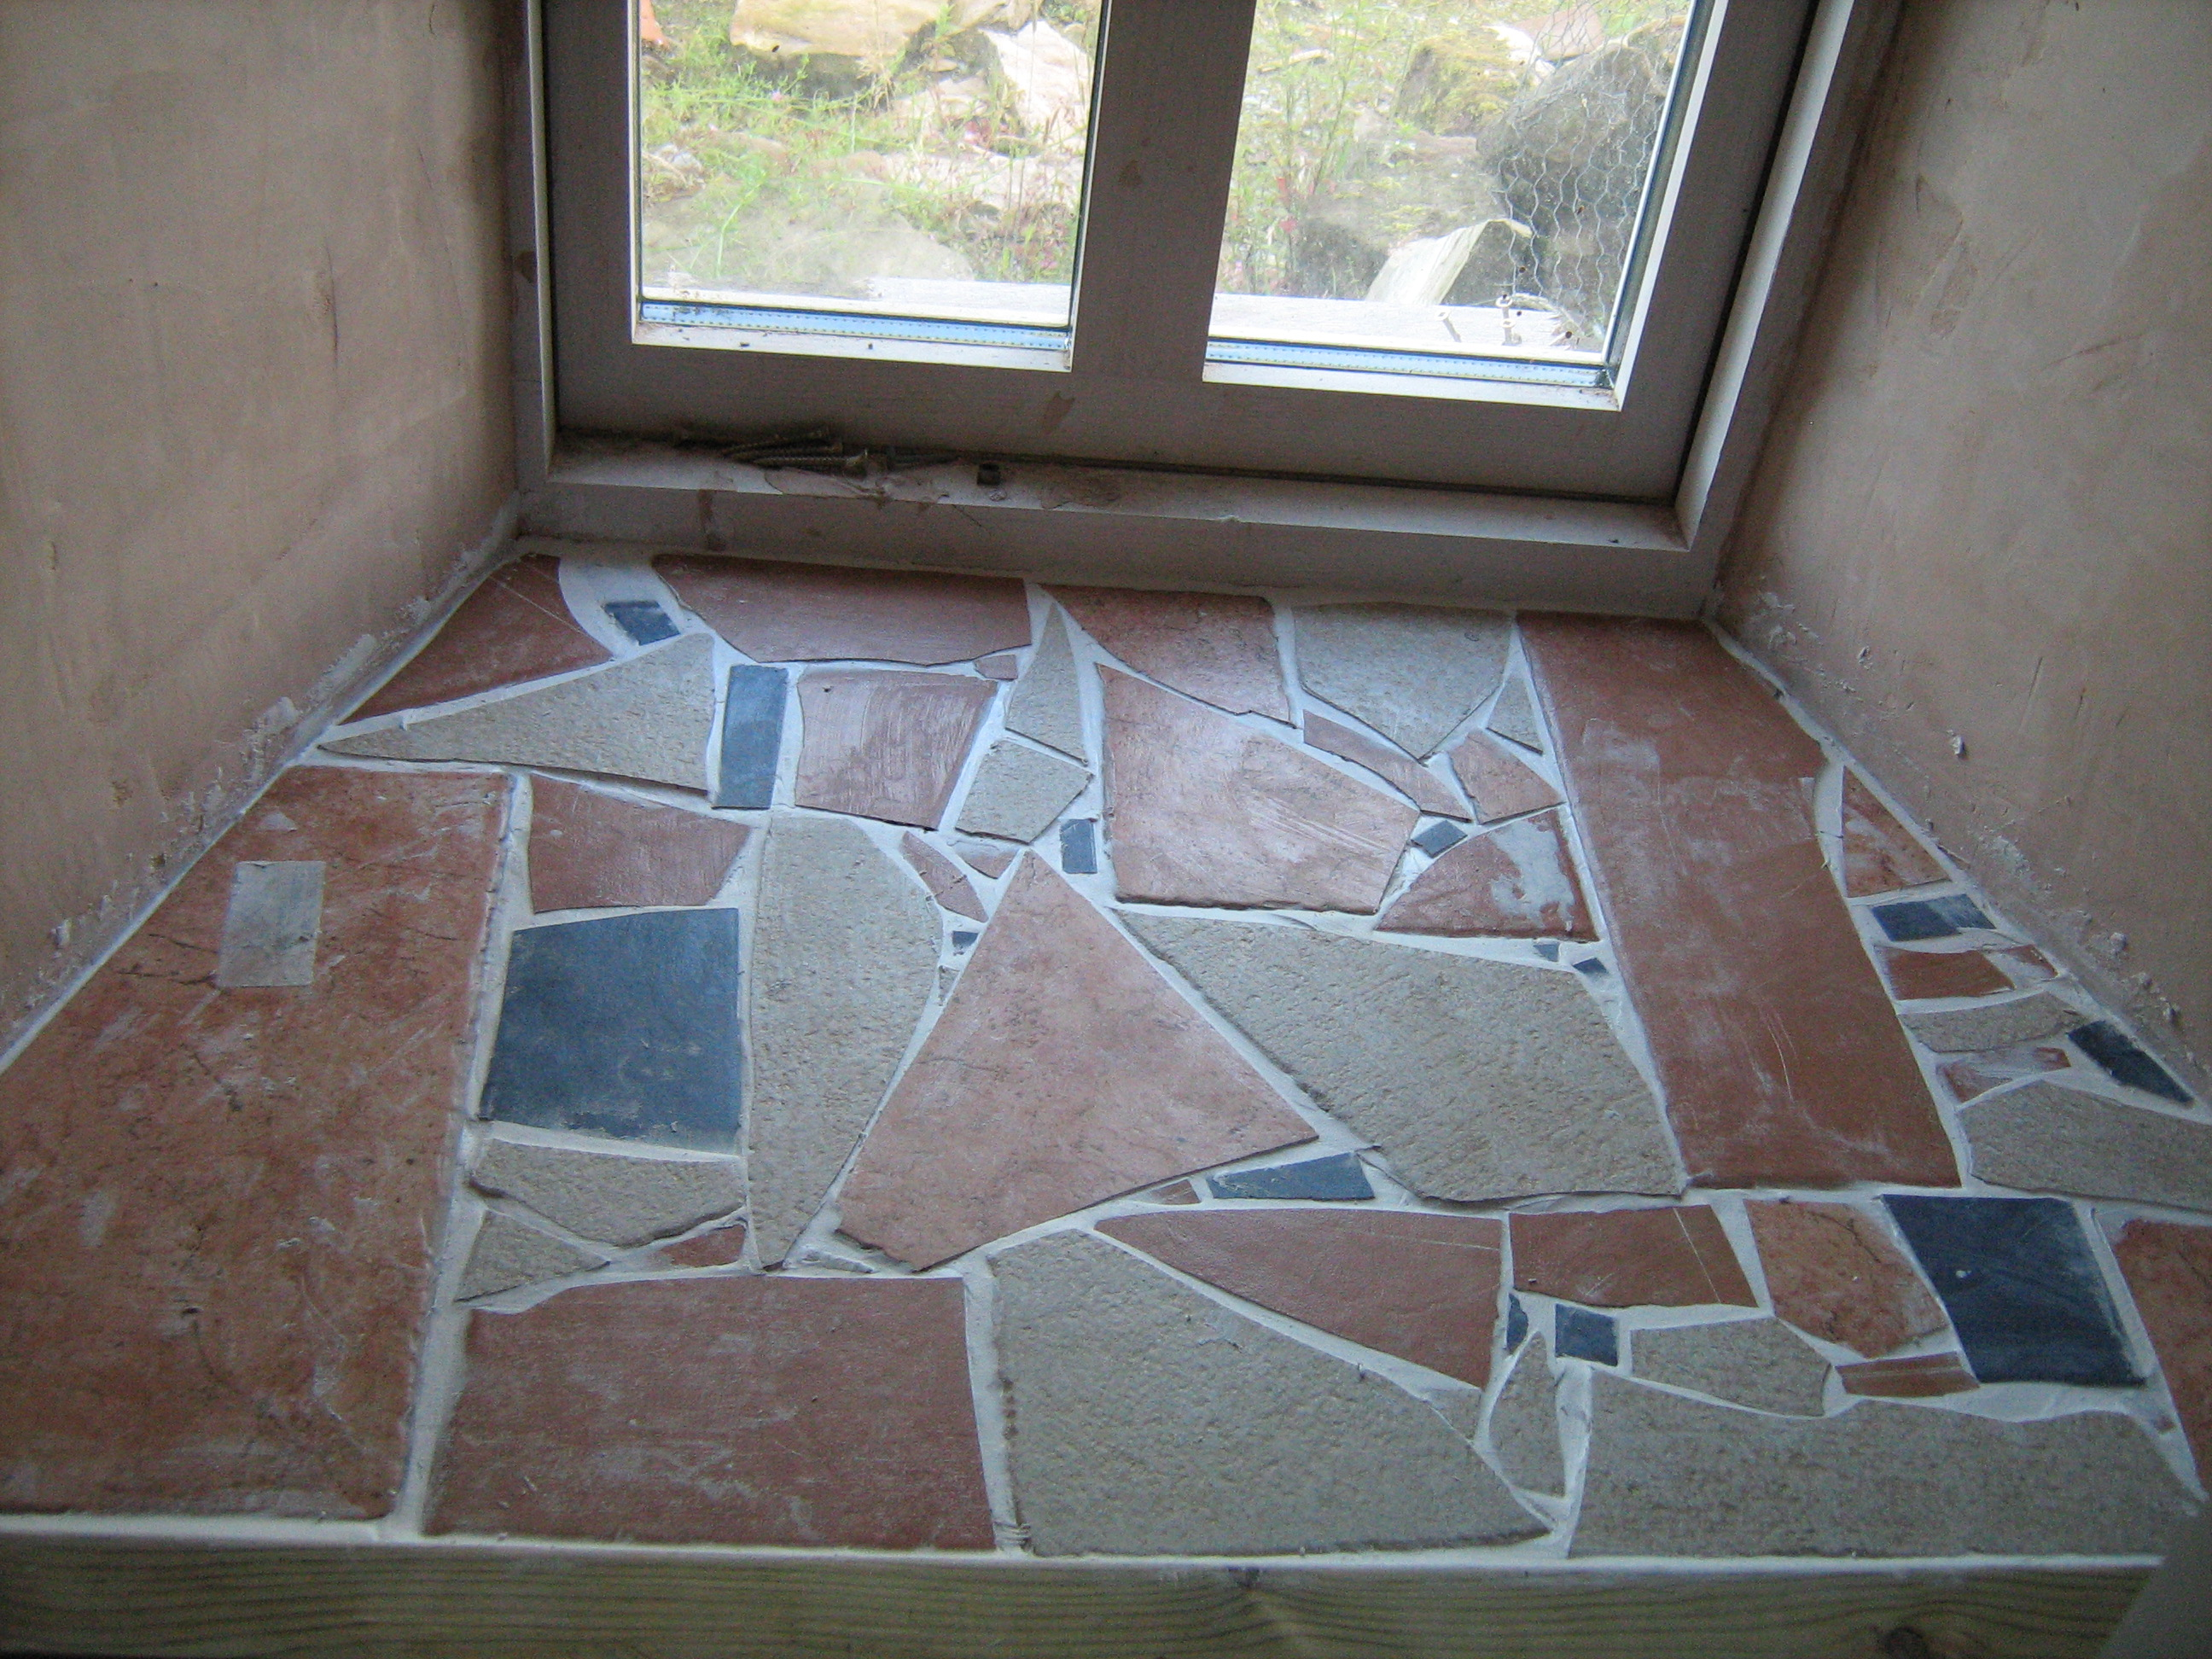 Ceramic Window Sills : Tiling how to cut tiles and other ways fail